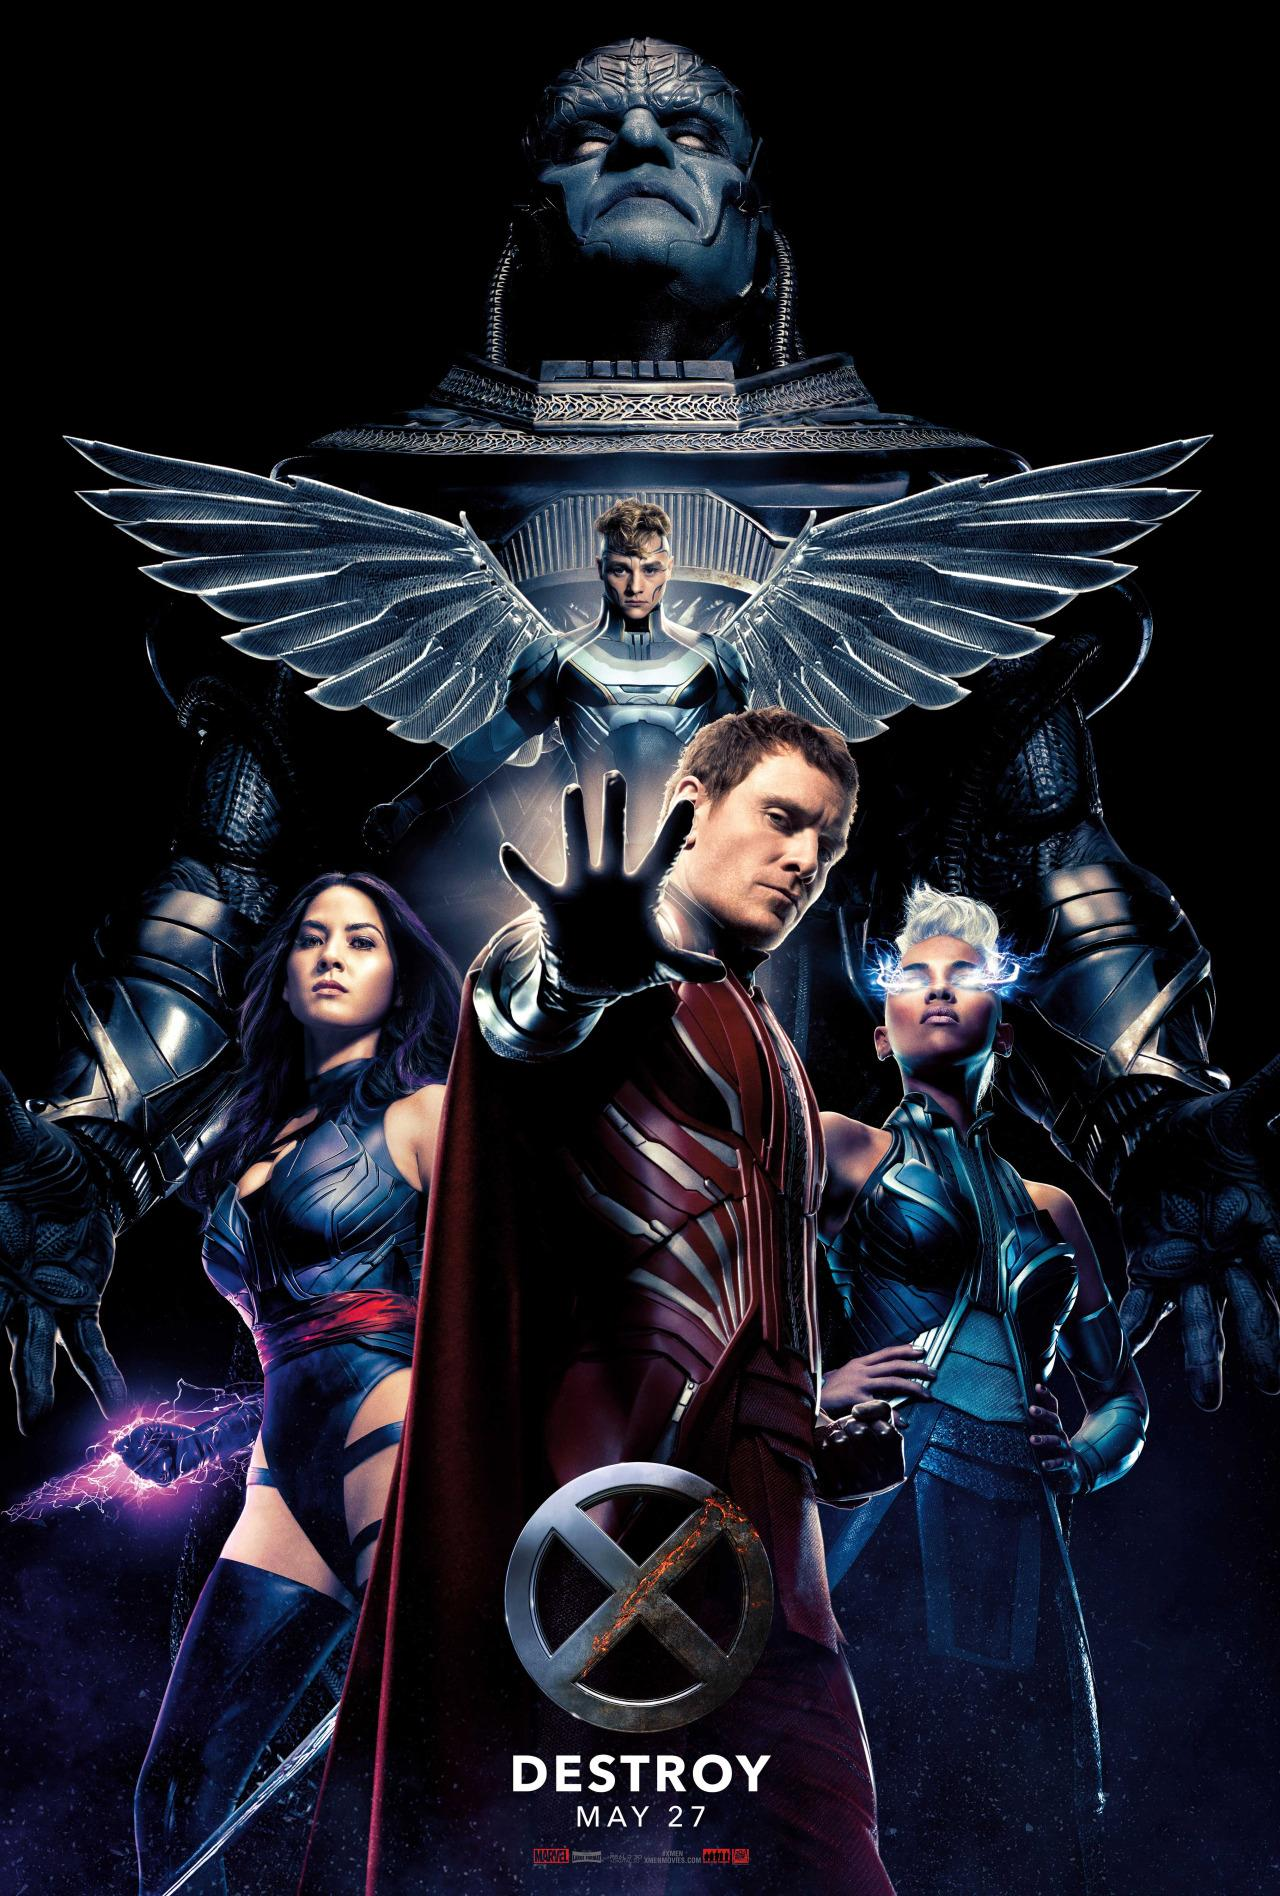 New X Men Apocalypse Poster Showcases Four Horsemen